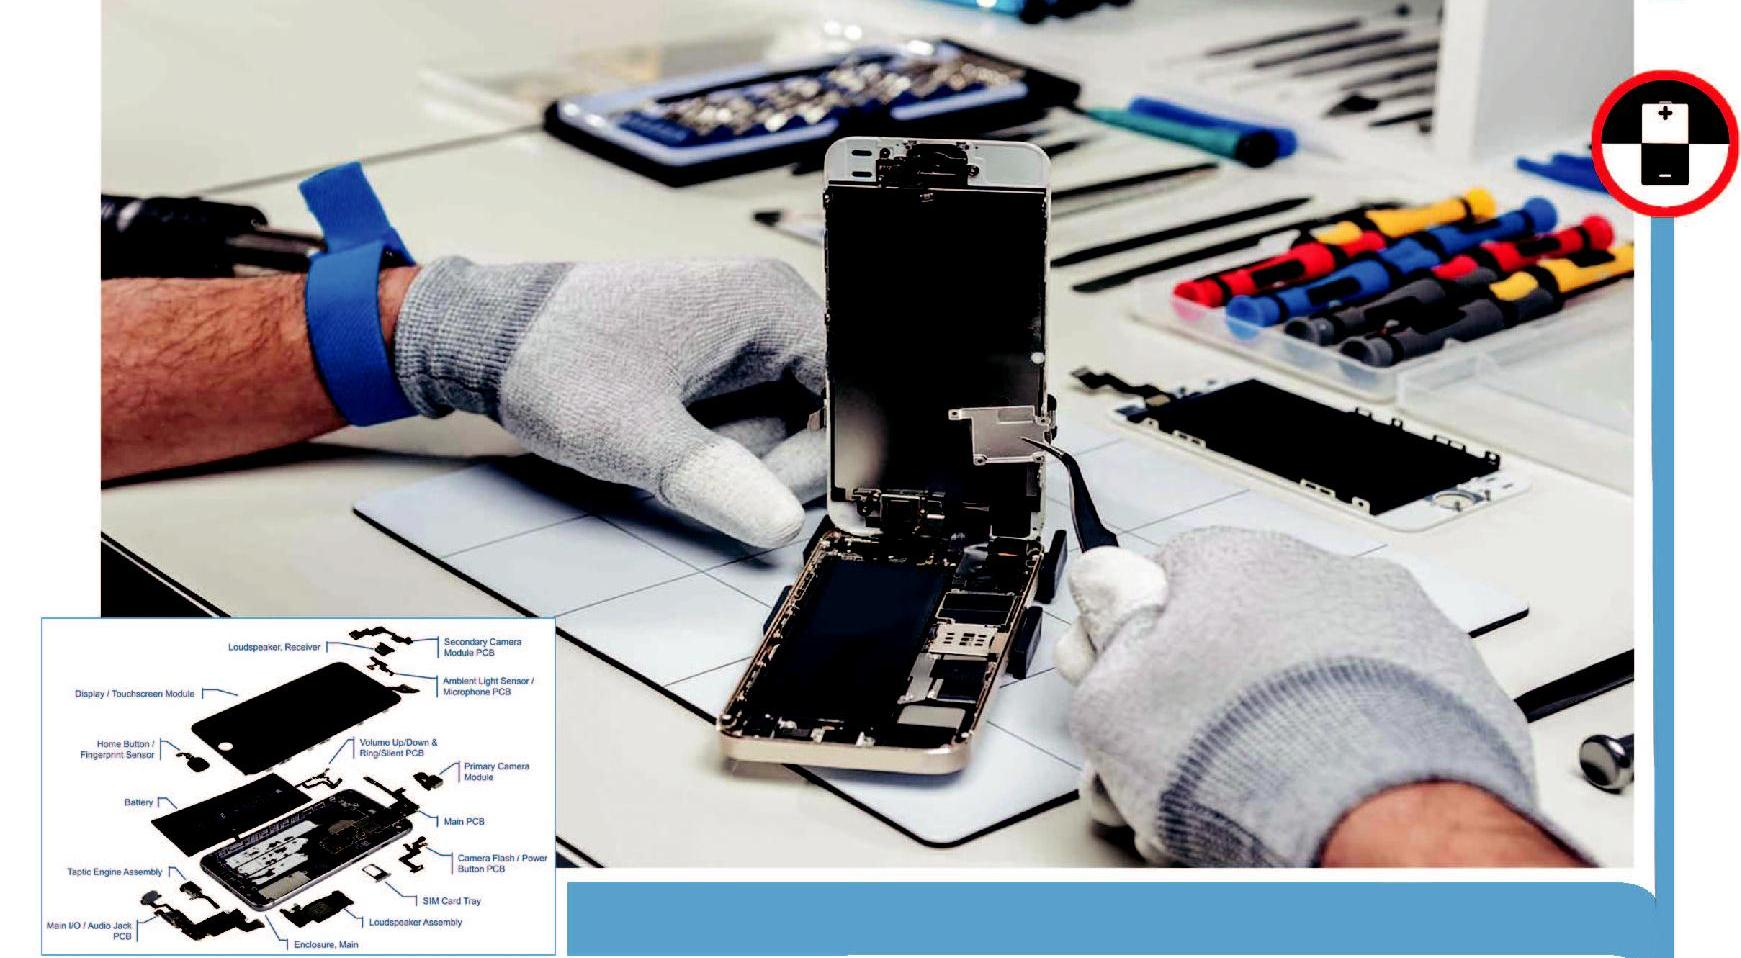 Smartphones Repair Technician:The individual at work is responsible for rectifying faults in the Smartphone brought in by the customer.  The individual receives the faulty Smartphone, diagnoses the problems, performs front end or hardware level repair as